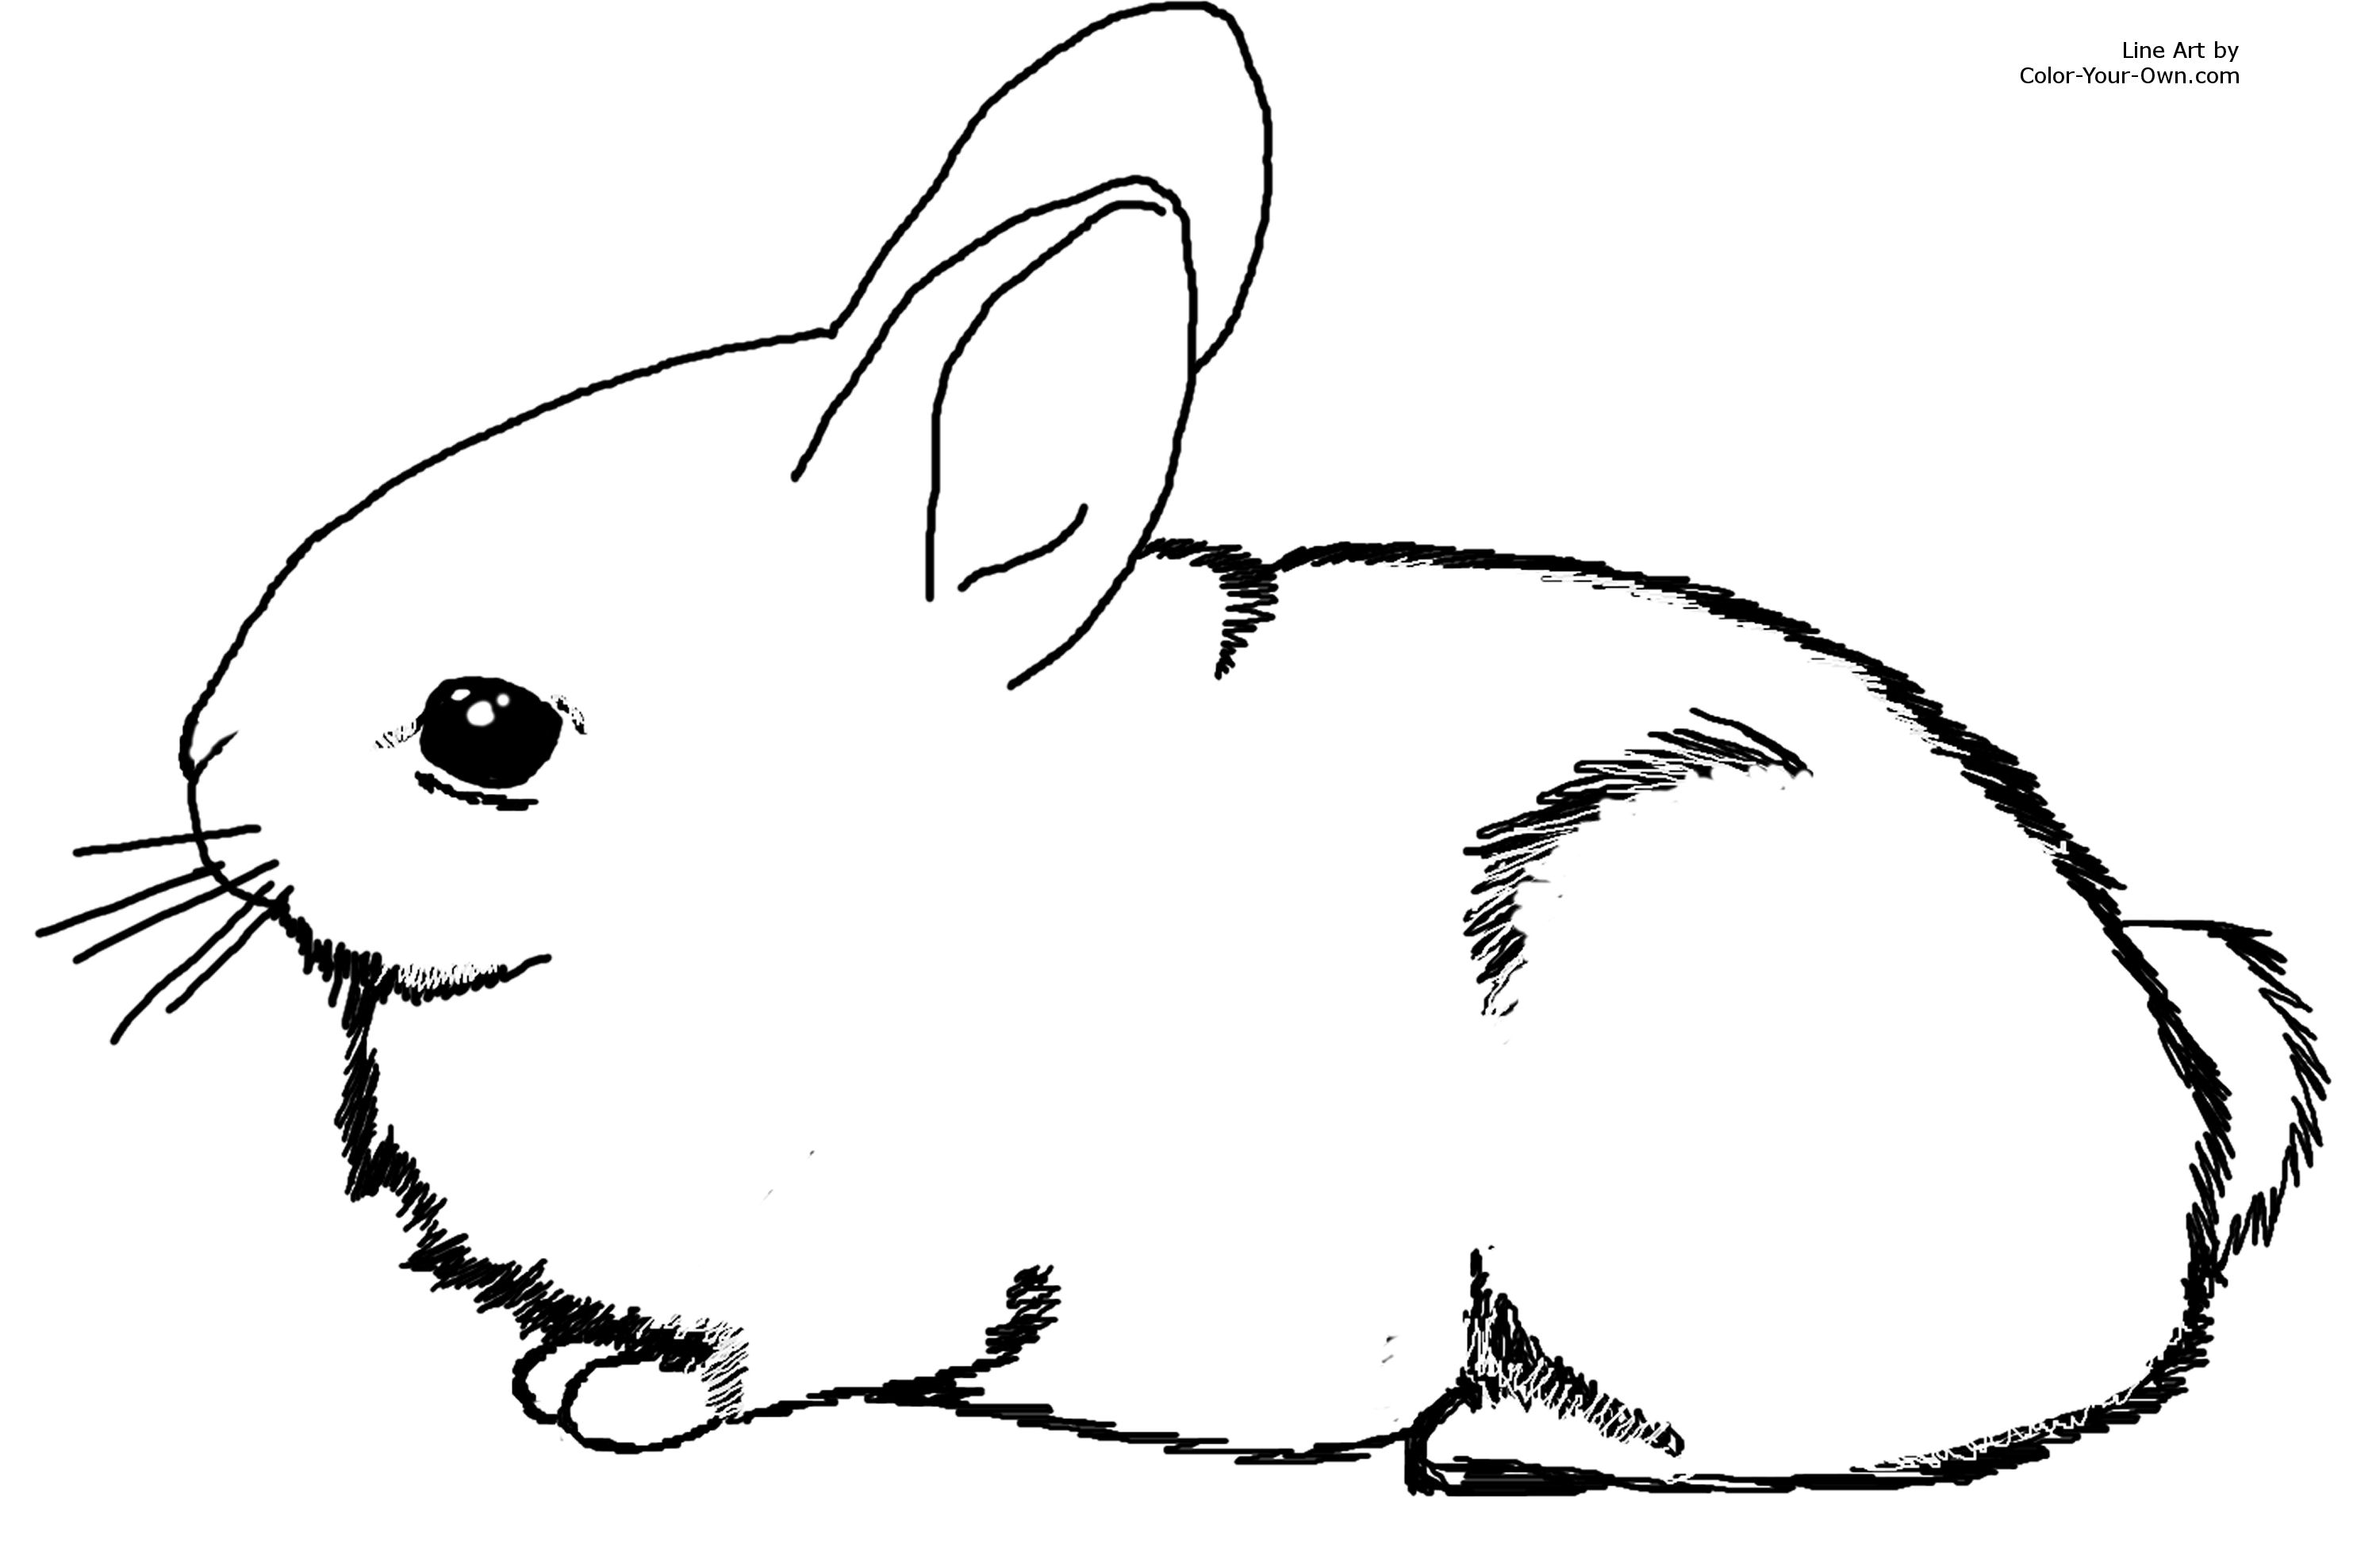 Coloring pages bunny -  Printable Size Click Here Return To The Coloring Pages Index